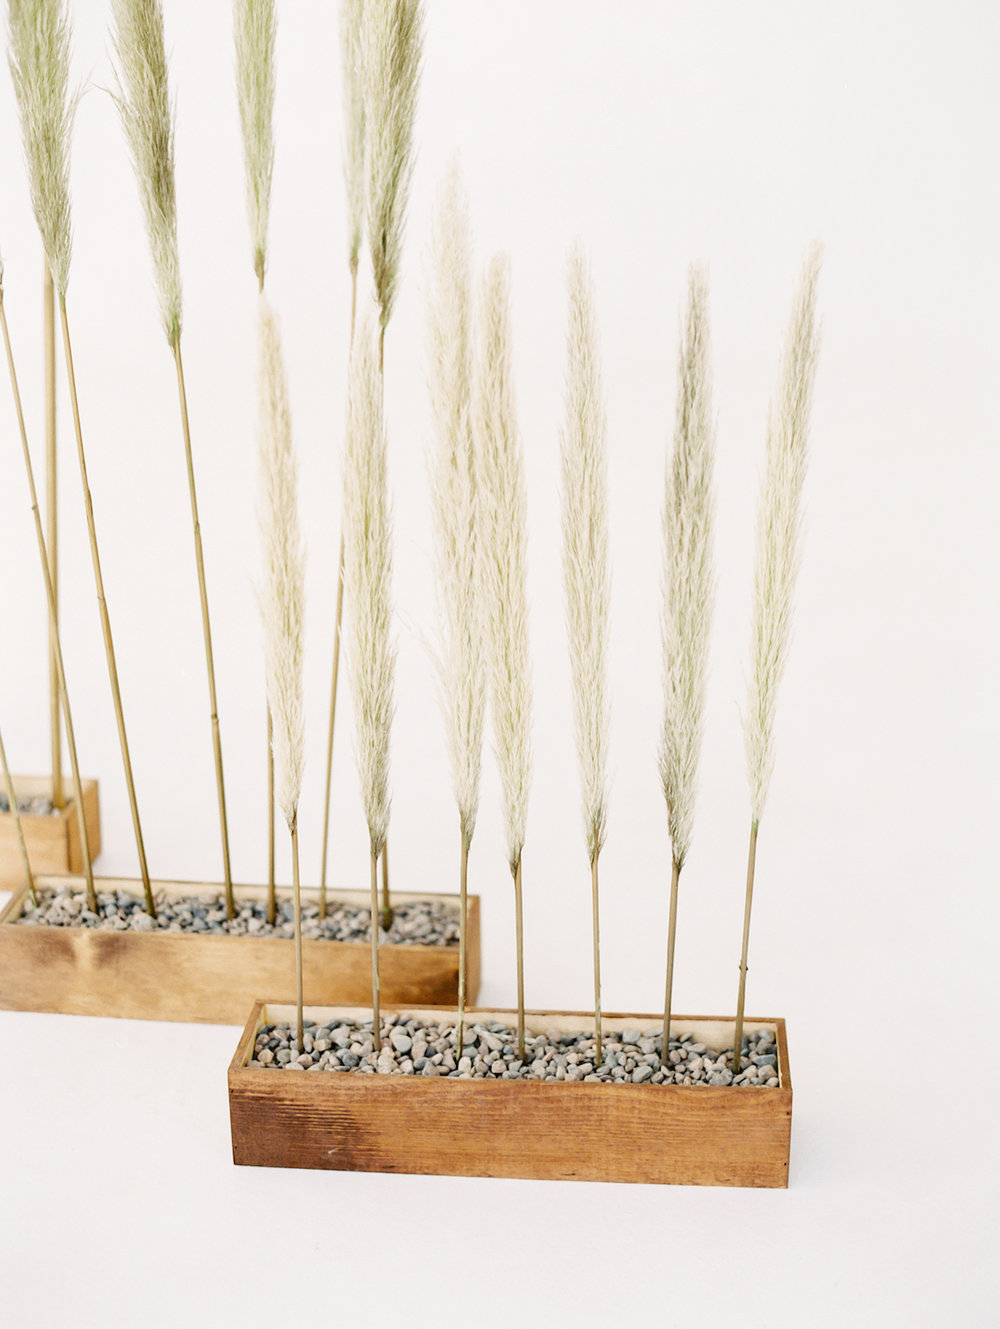 Pampas grass installation | Studio 710 | Compass Floral | Wedding Florist in San Diego and Southern California | Dear Lovers Photography